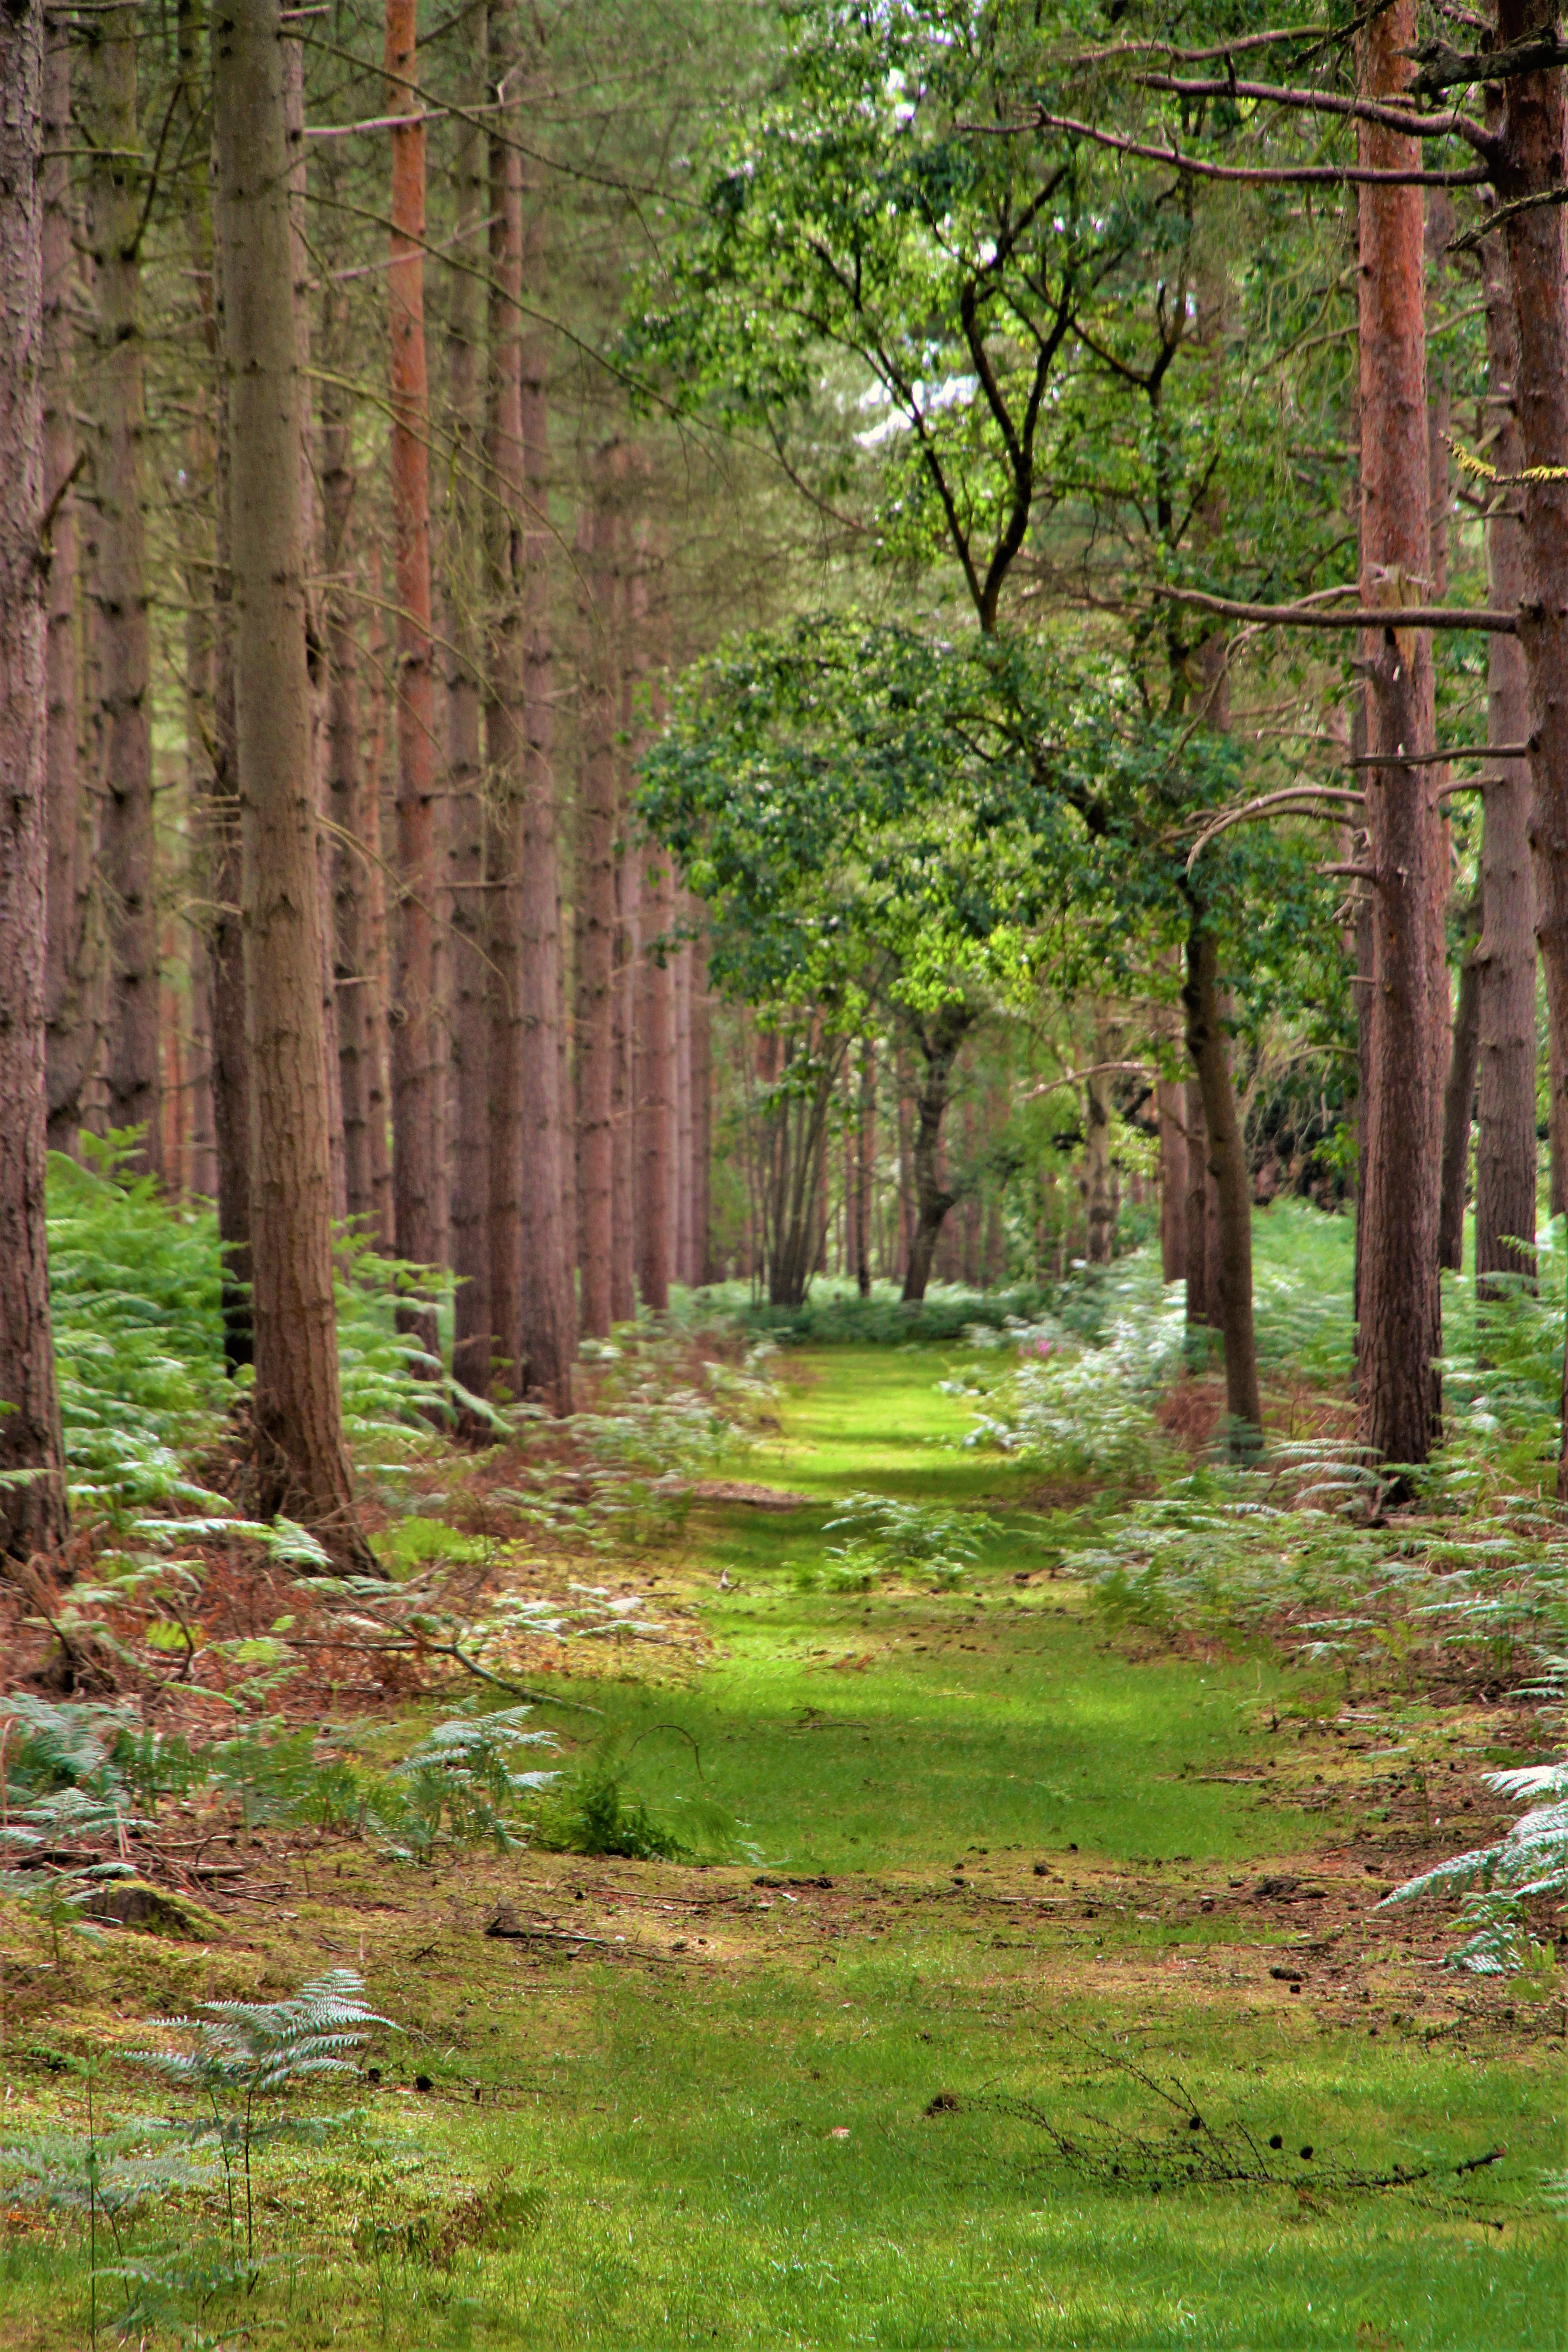 through-the-woods-by-paul-waite